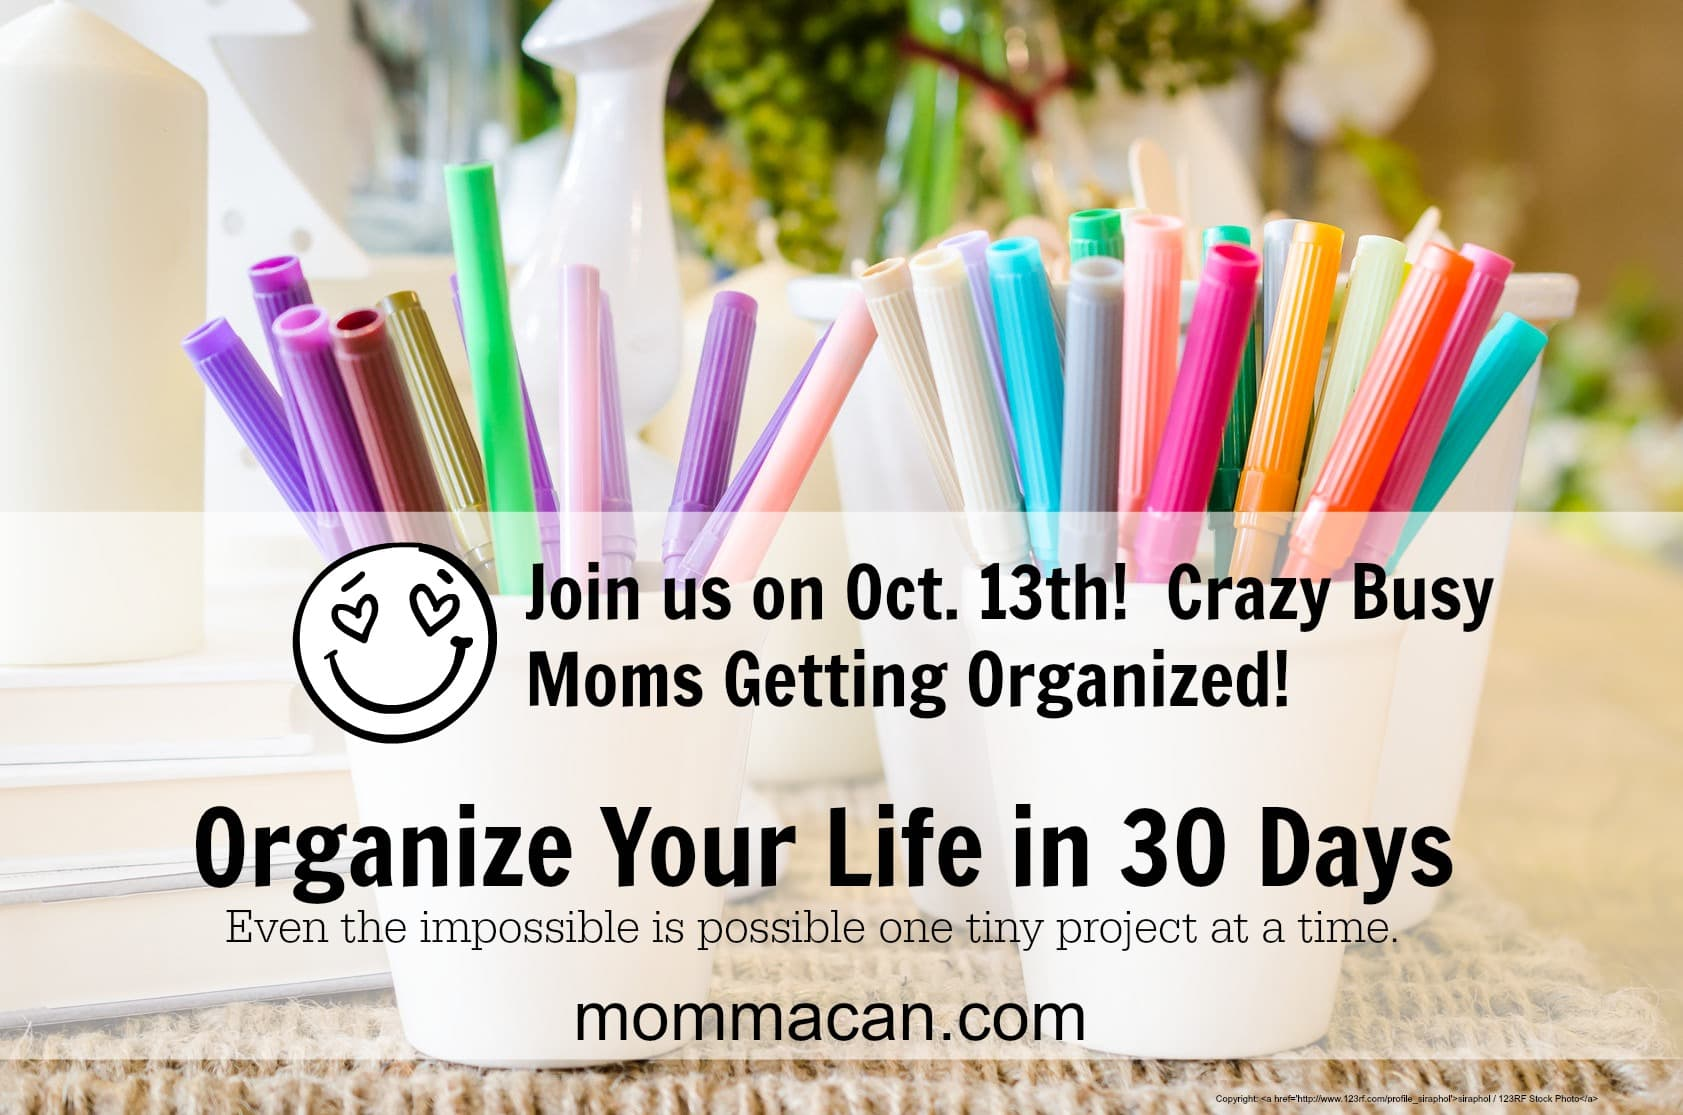 Organize Your Life In 30 Days – Be Prepared